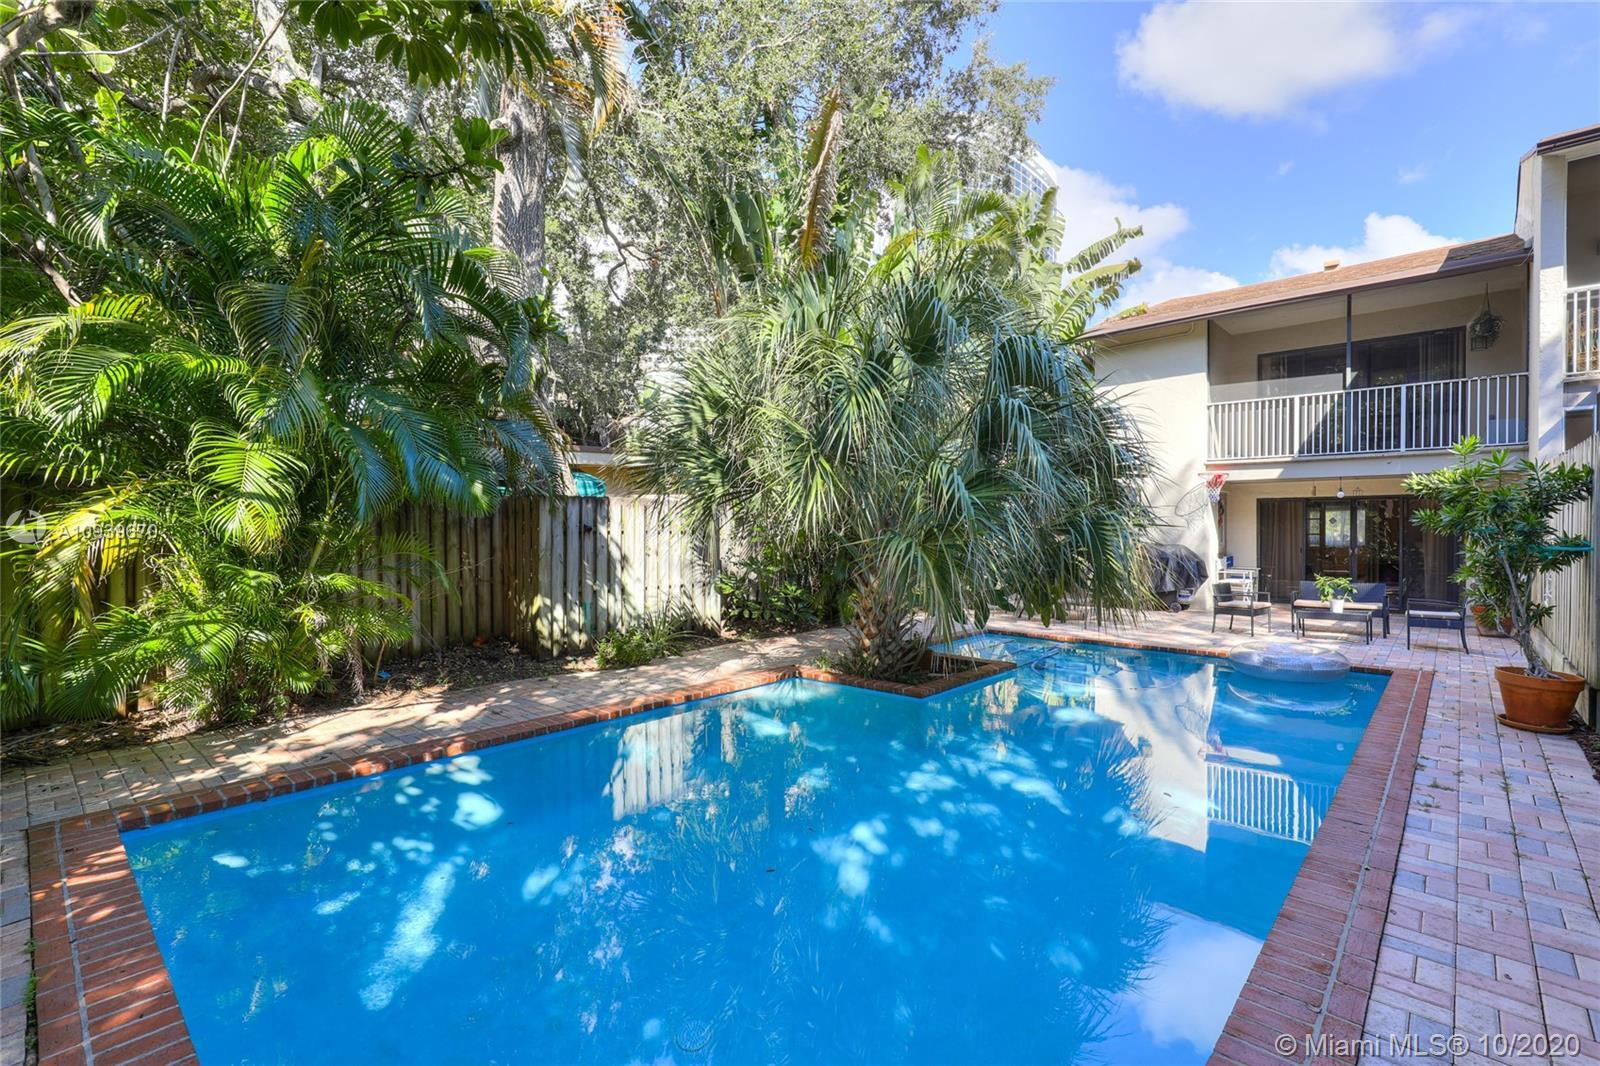 RIO VISTA CORNER TOWNHOME!!! Rarely available & highly sought after Rio Vista location. Walk to rest